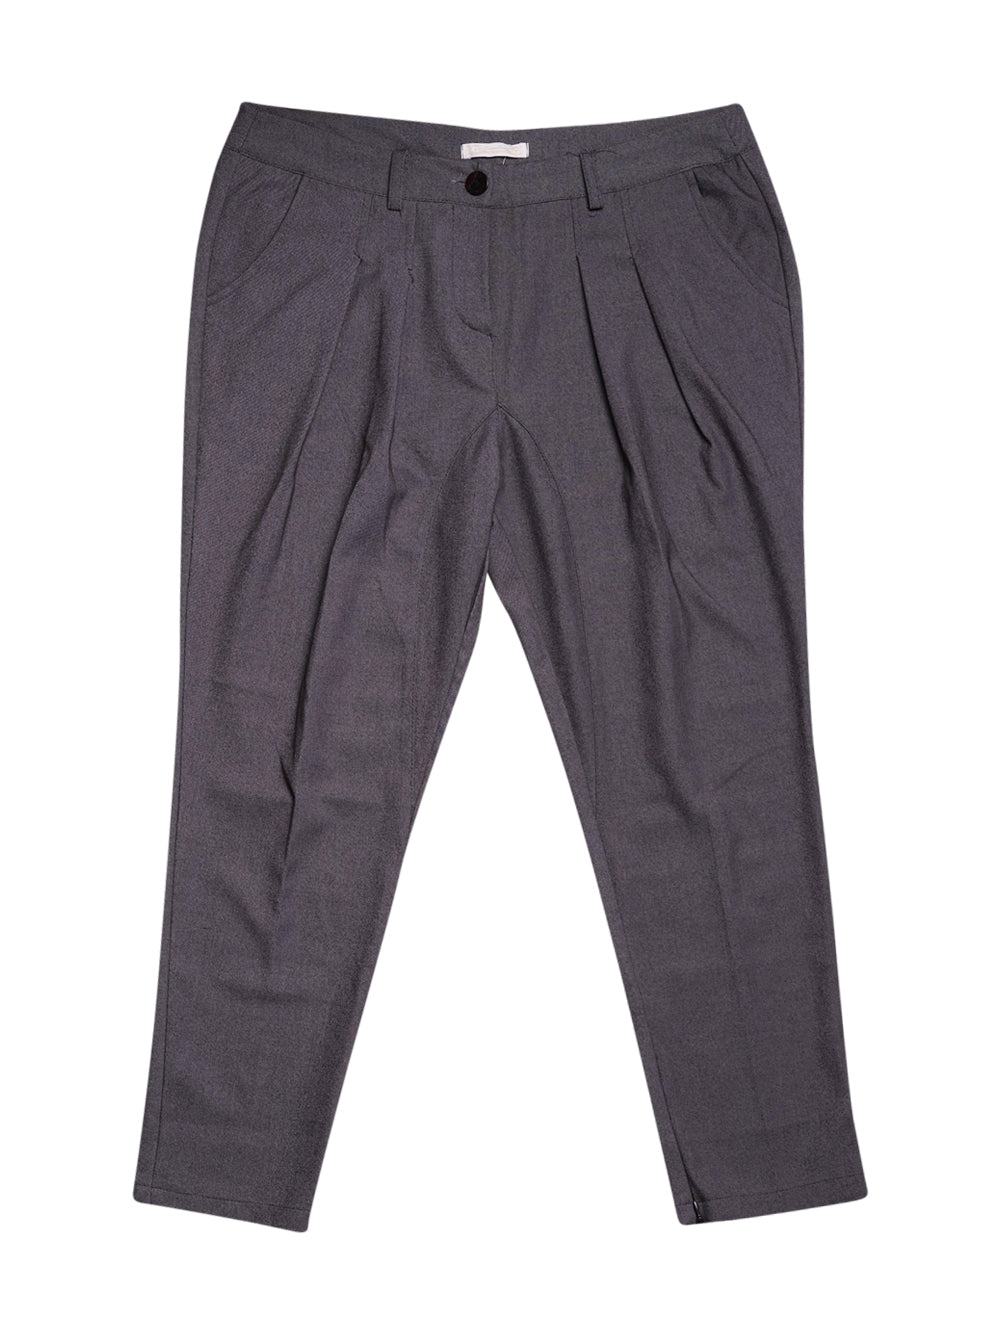 Front photo of Preloved prima linea Grey Woman's trousers - size 14/XL